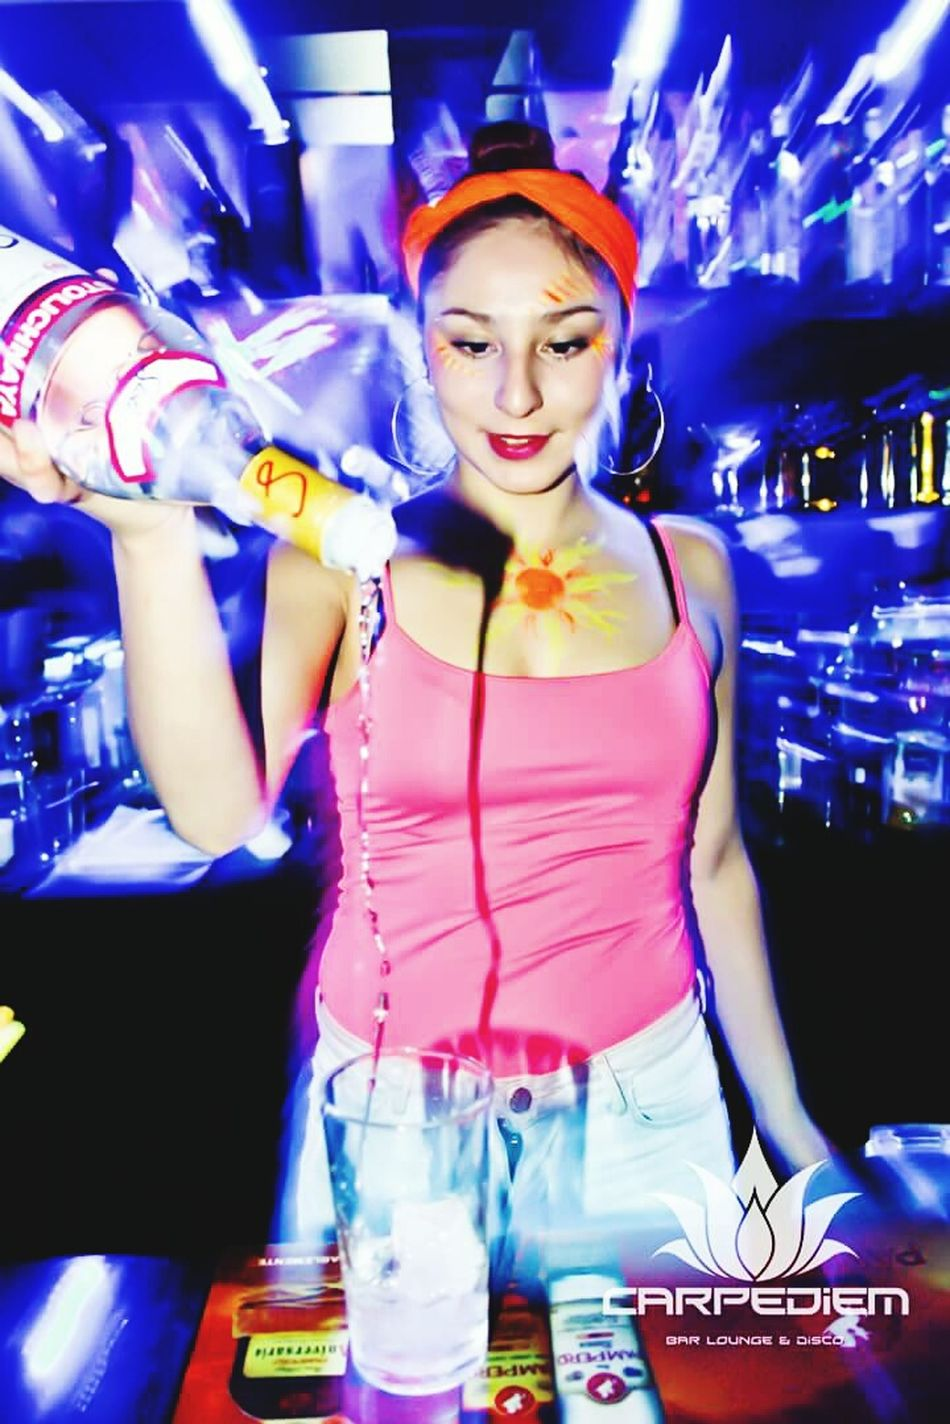 Barwoman Style Fluorescent Colors Colors First Eyeem Photo